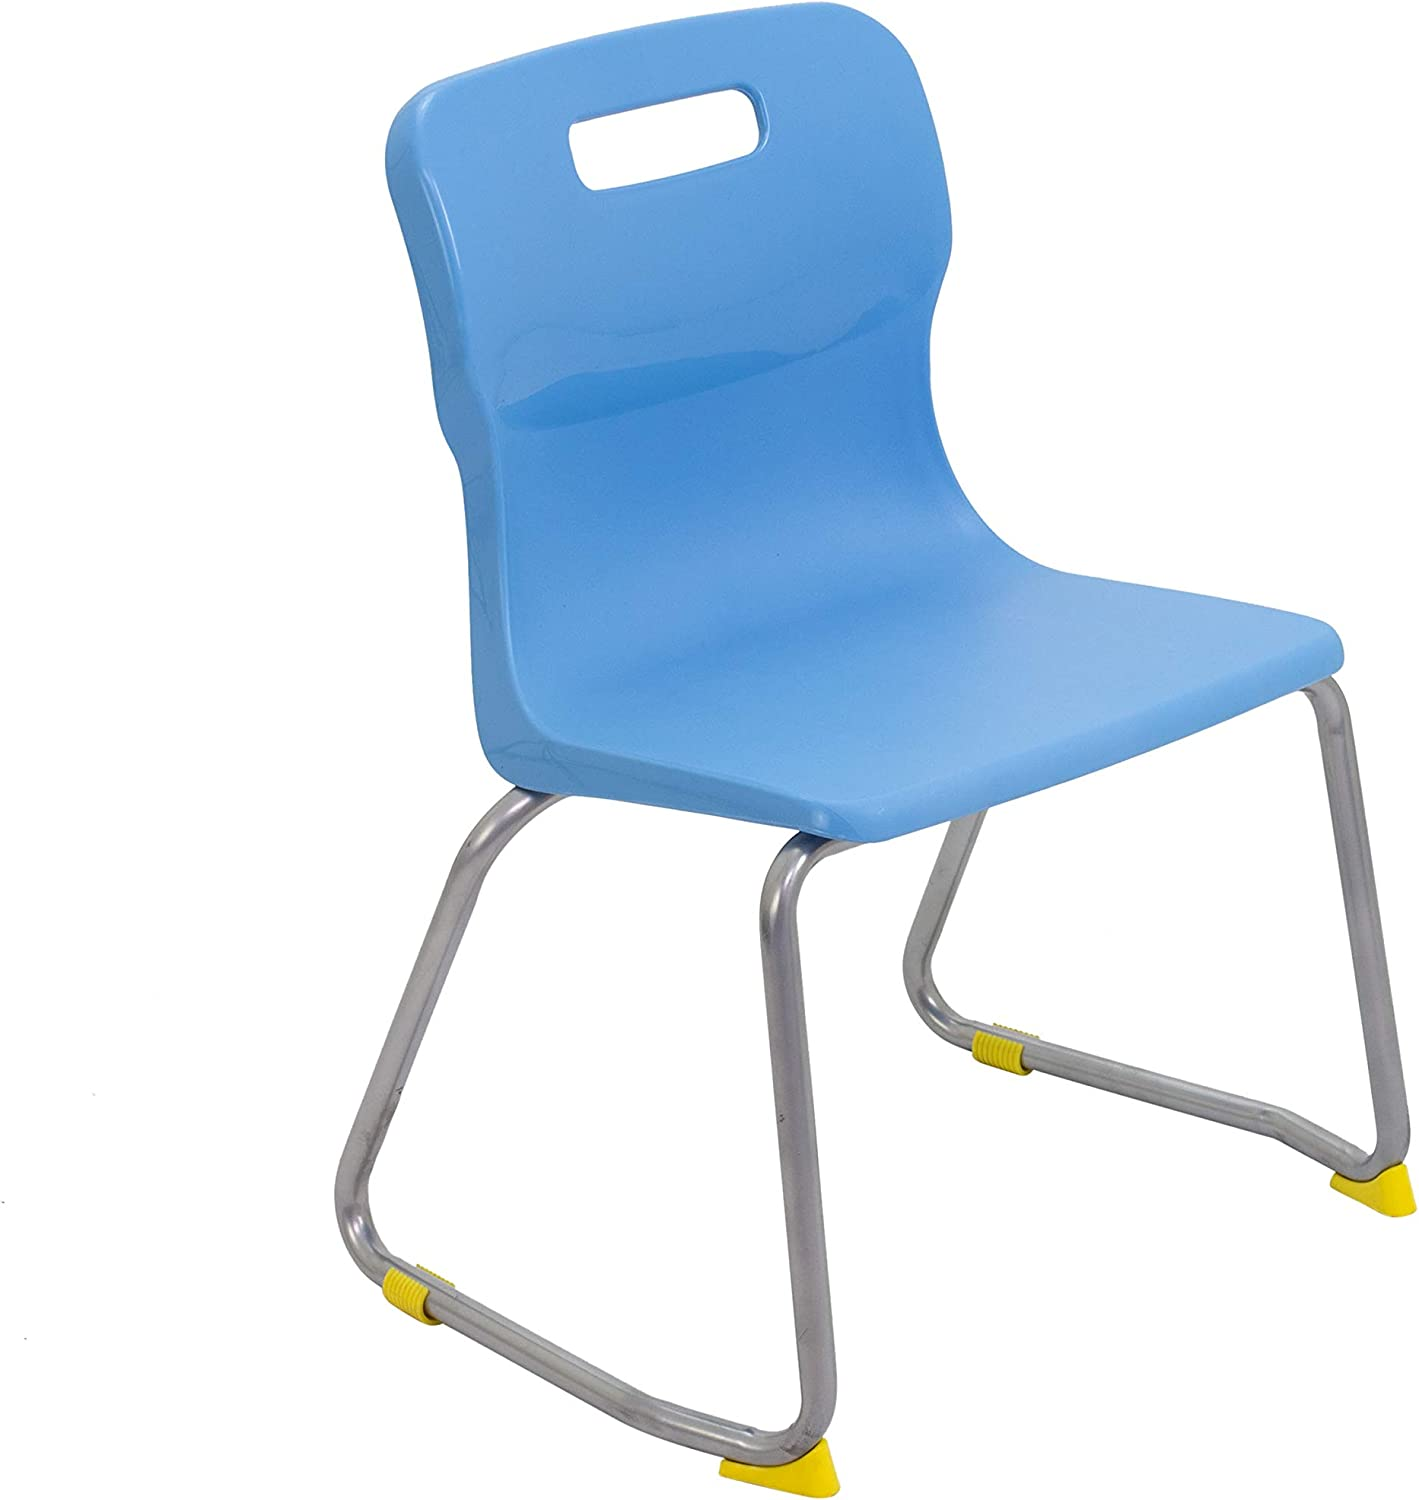 Titan Skid Classroom Chair, Plastic, Age 57 Years, Sky bluee, Pack of 3